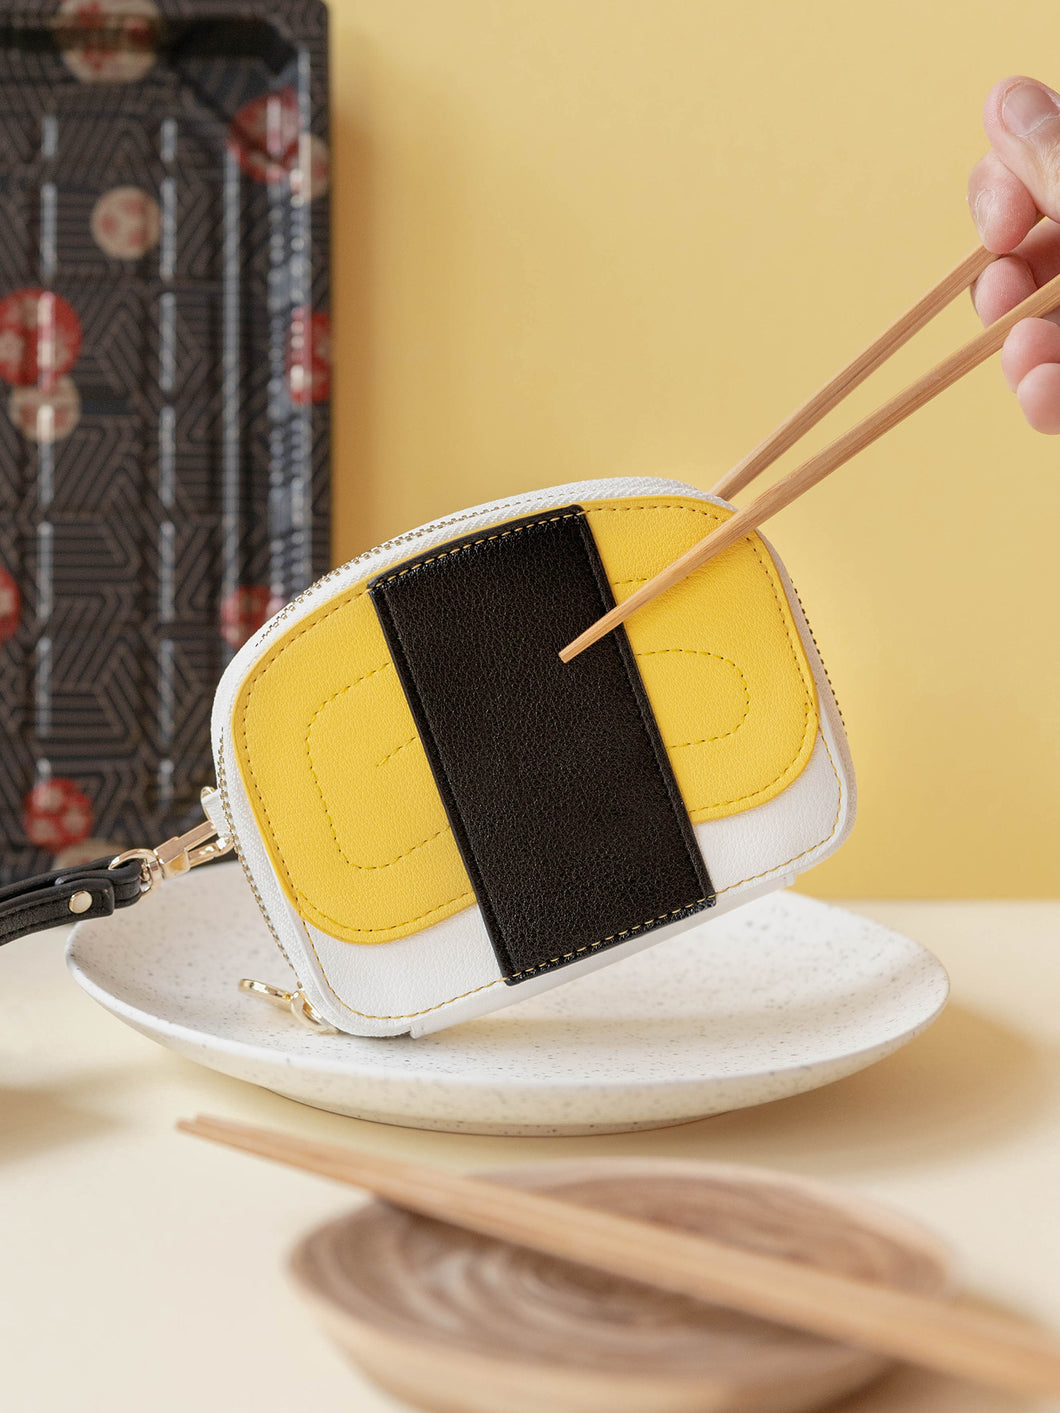 The Tamago Sushi Pouch